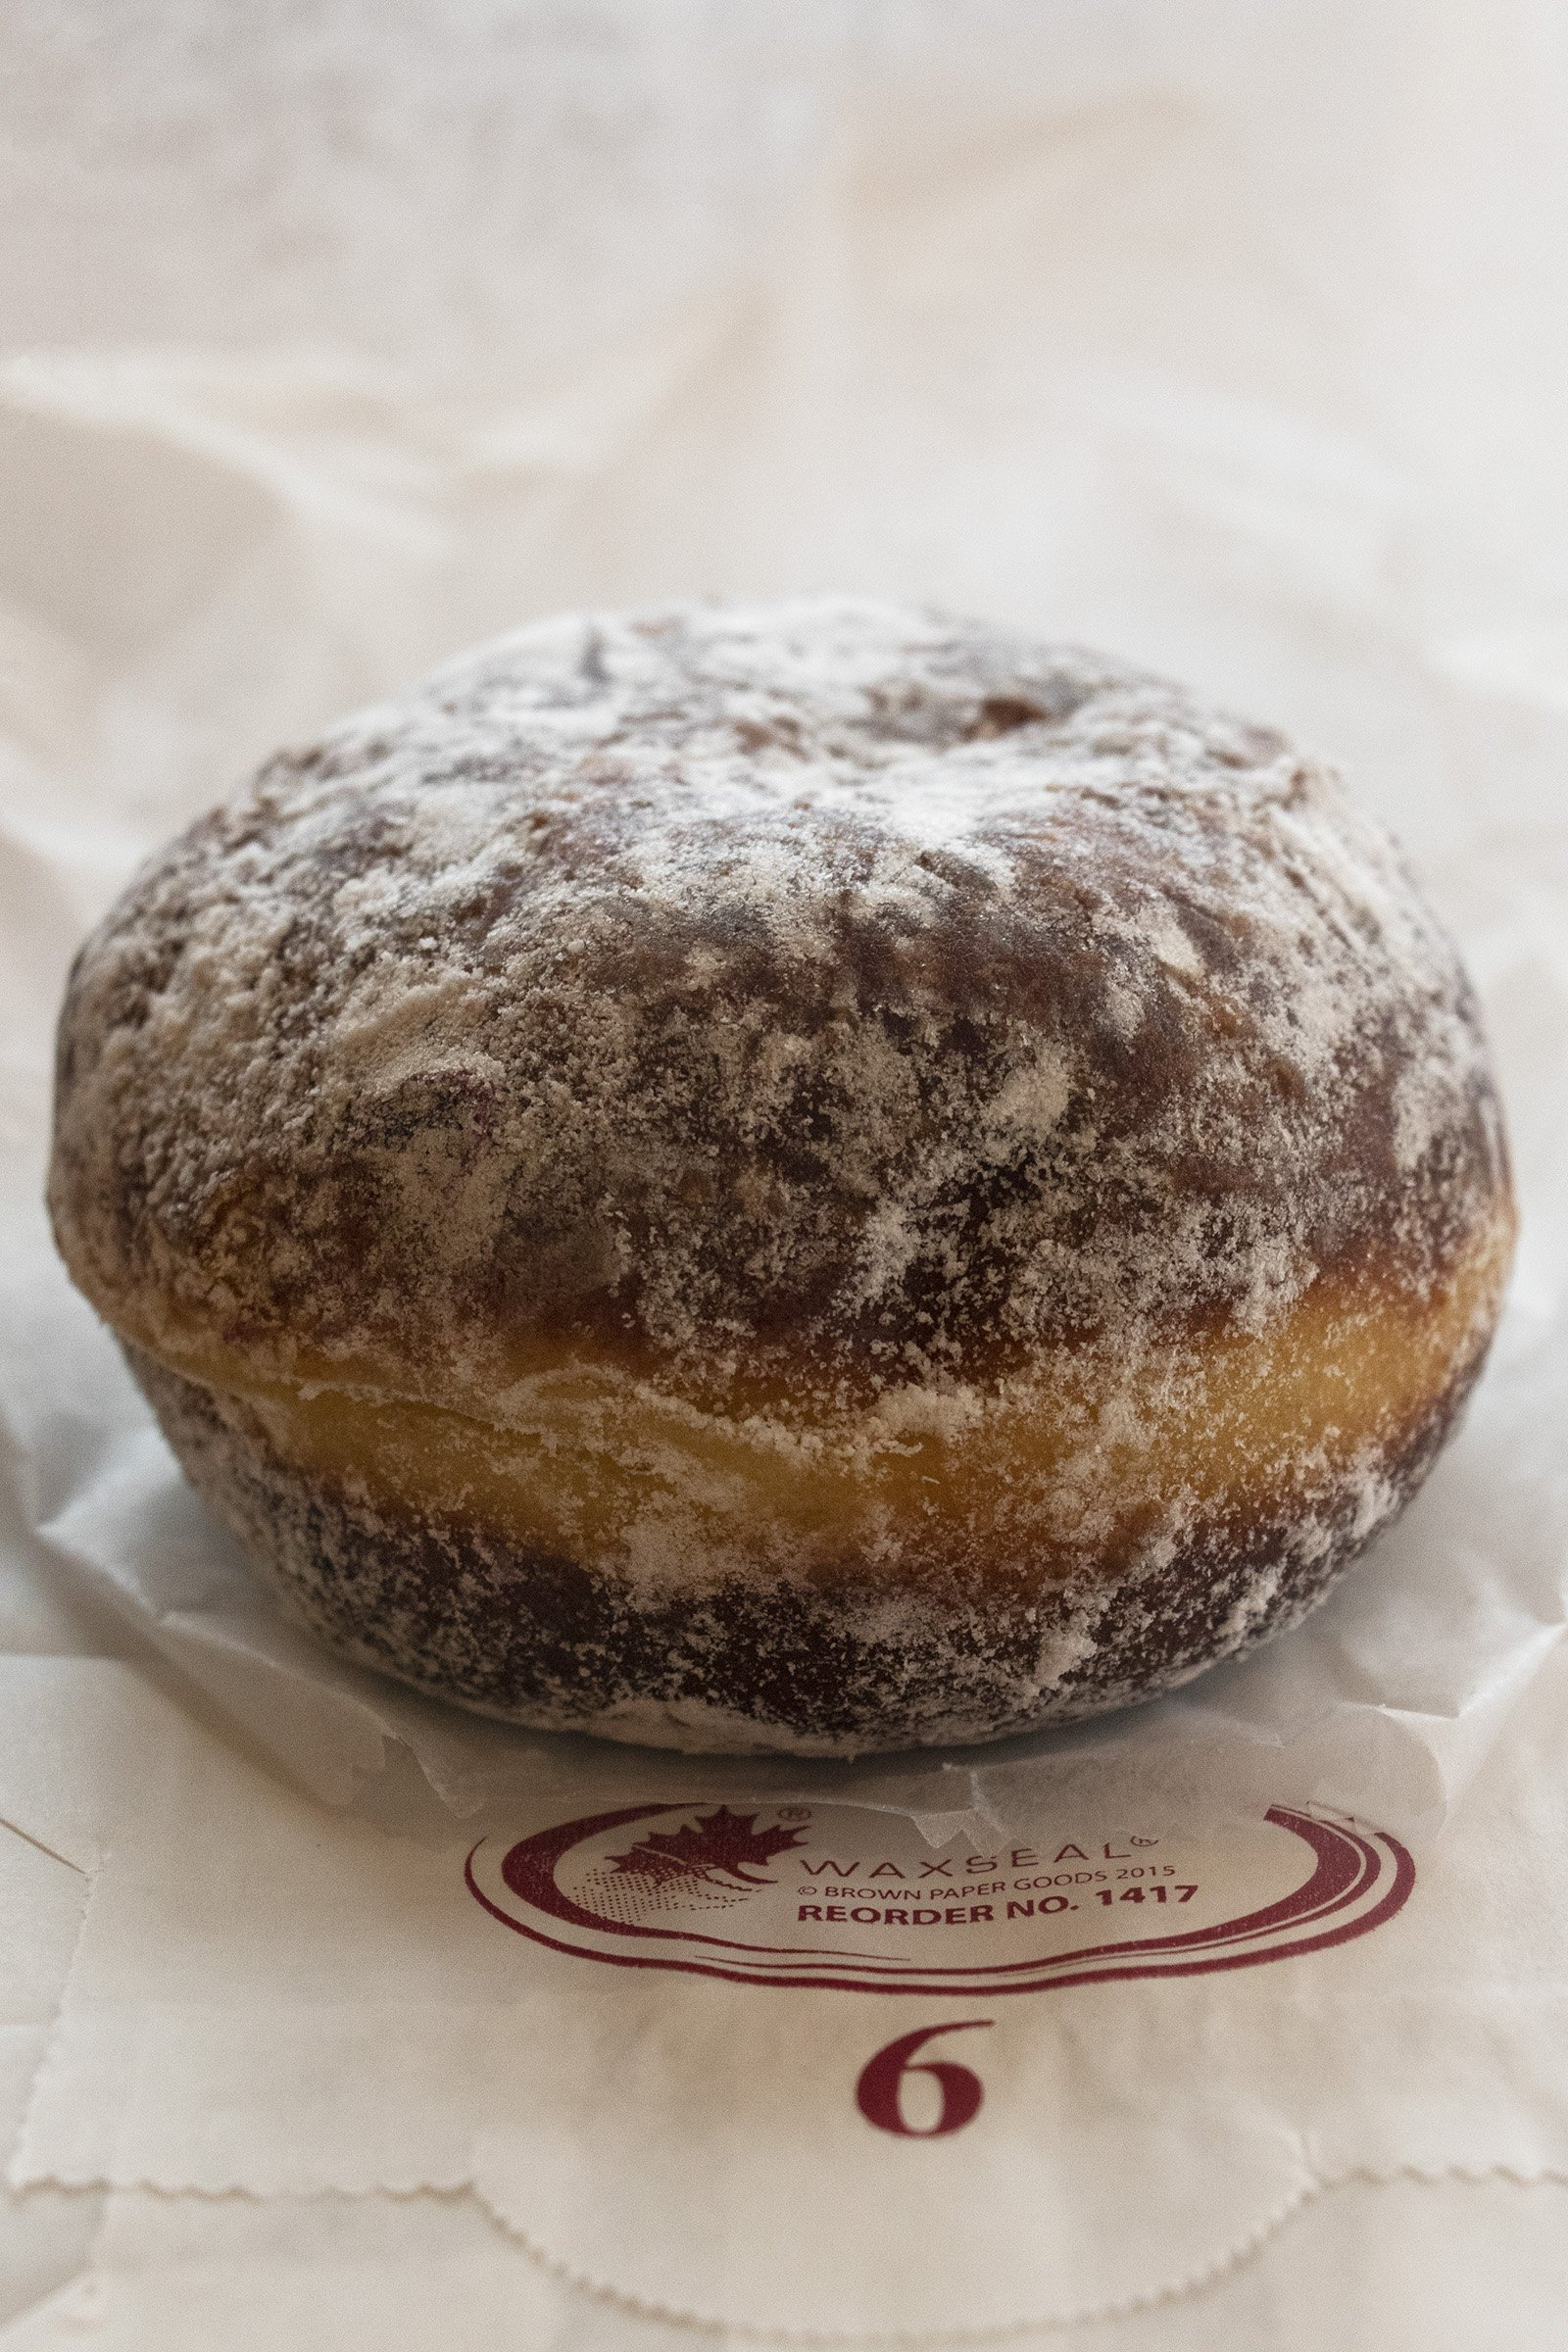 Blueberry jam donut from Union Square Donuts, Boston